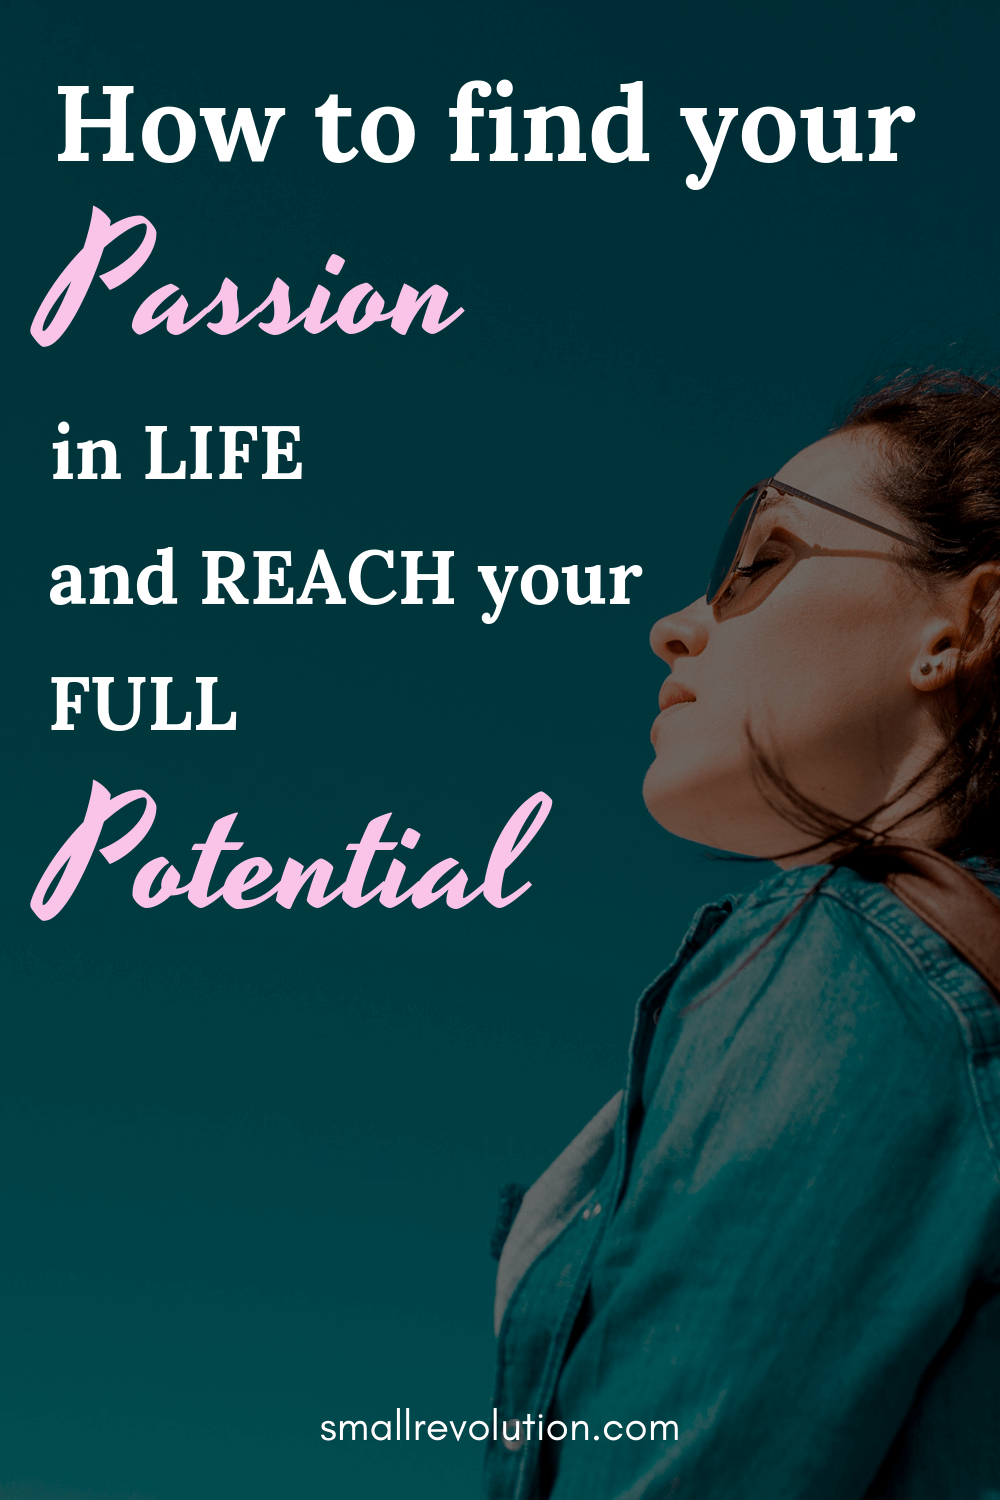 How to find your passion in life an reach your full potential